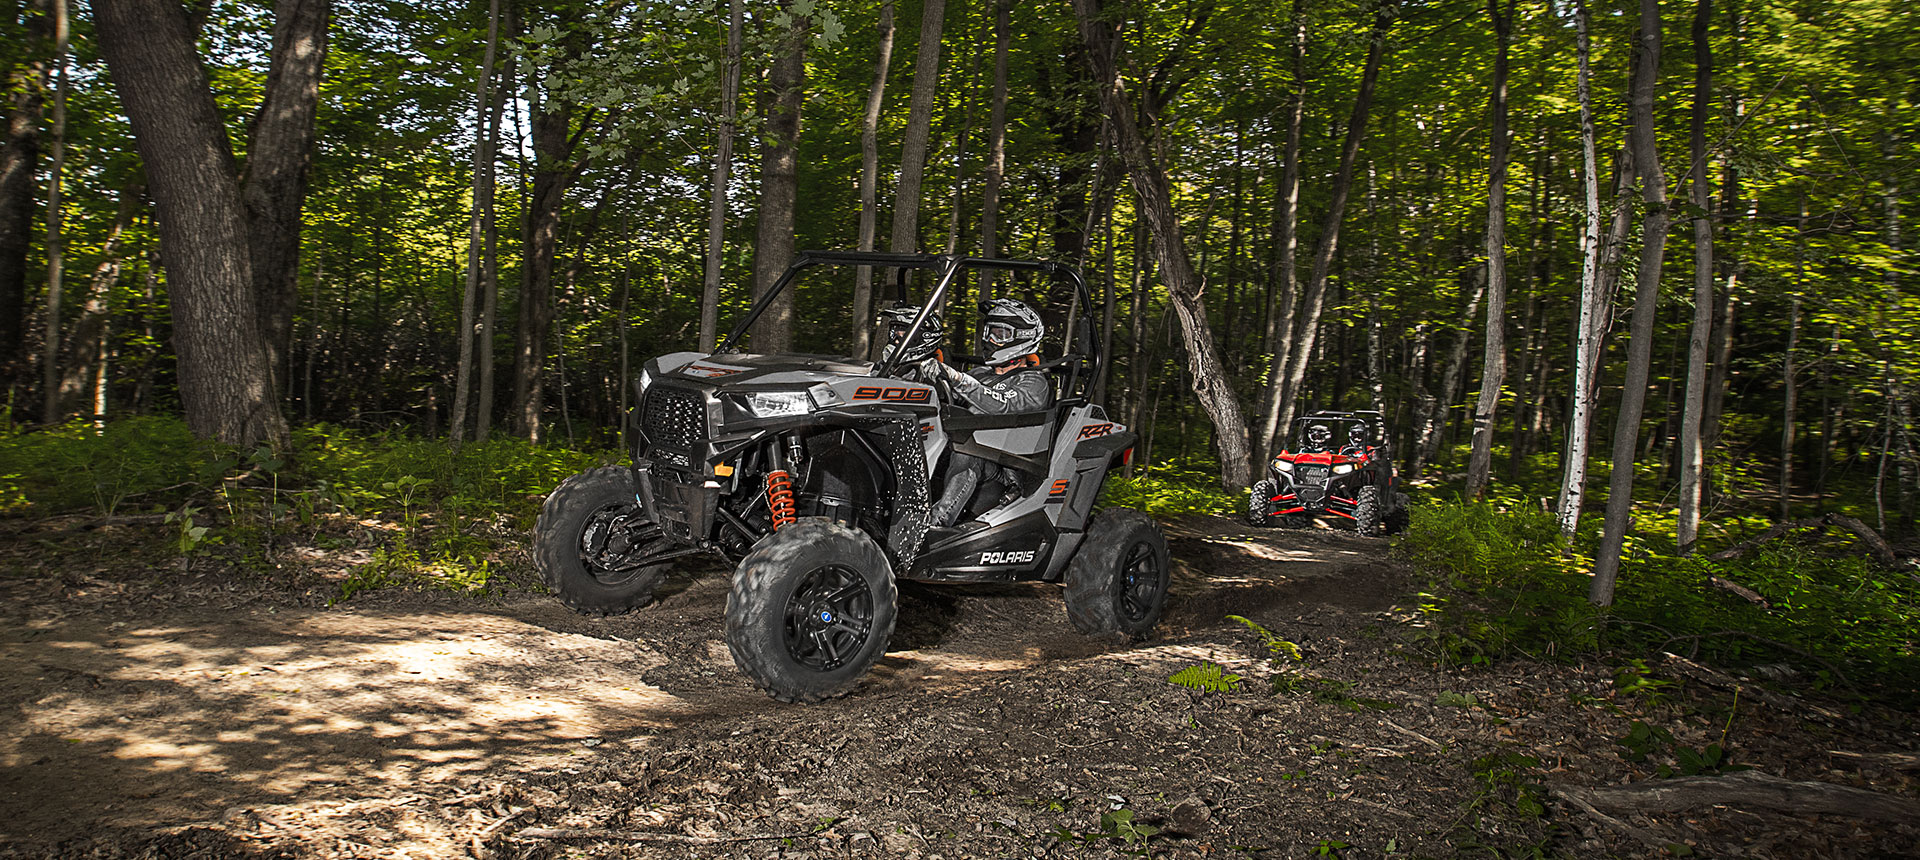 2019 Polaris RZR S 900 EPS in San Marcos, California